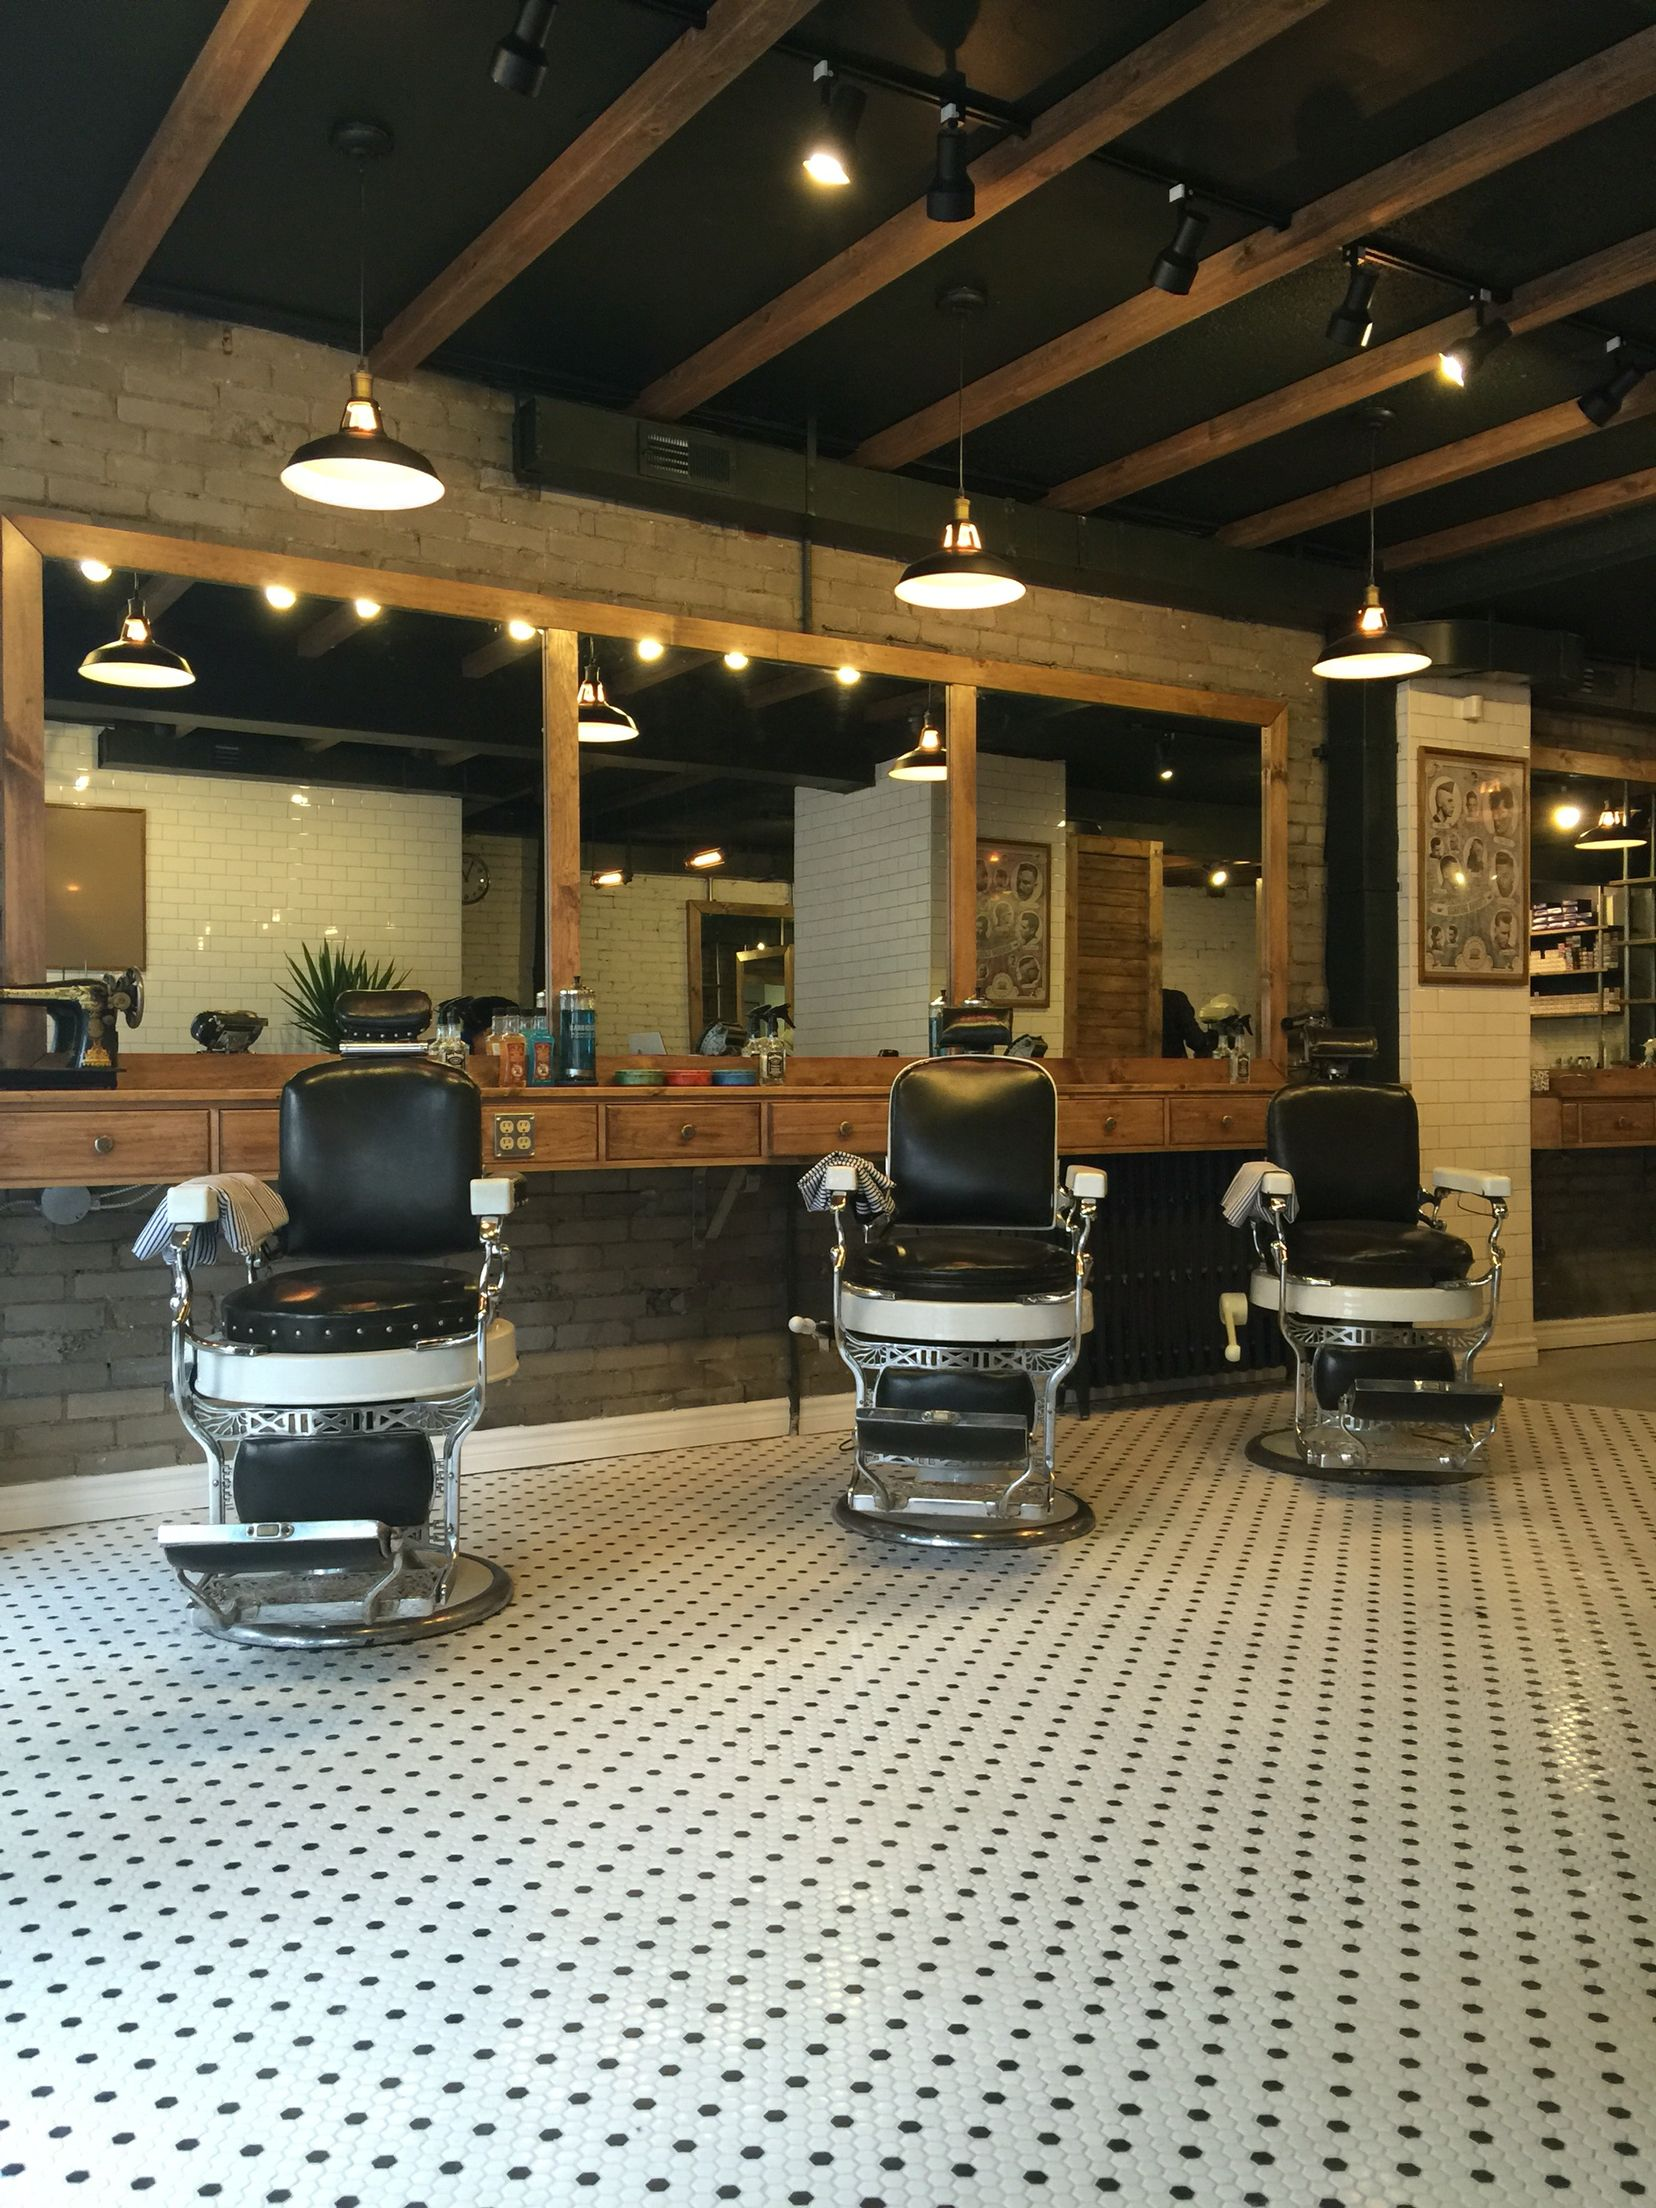 Barber Shop With Antique Chairs With Images Barber Shop